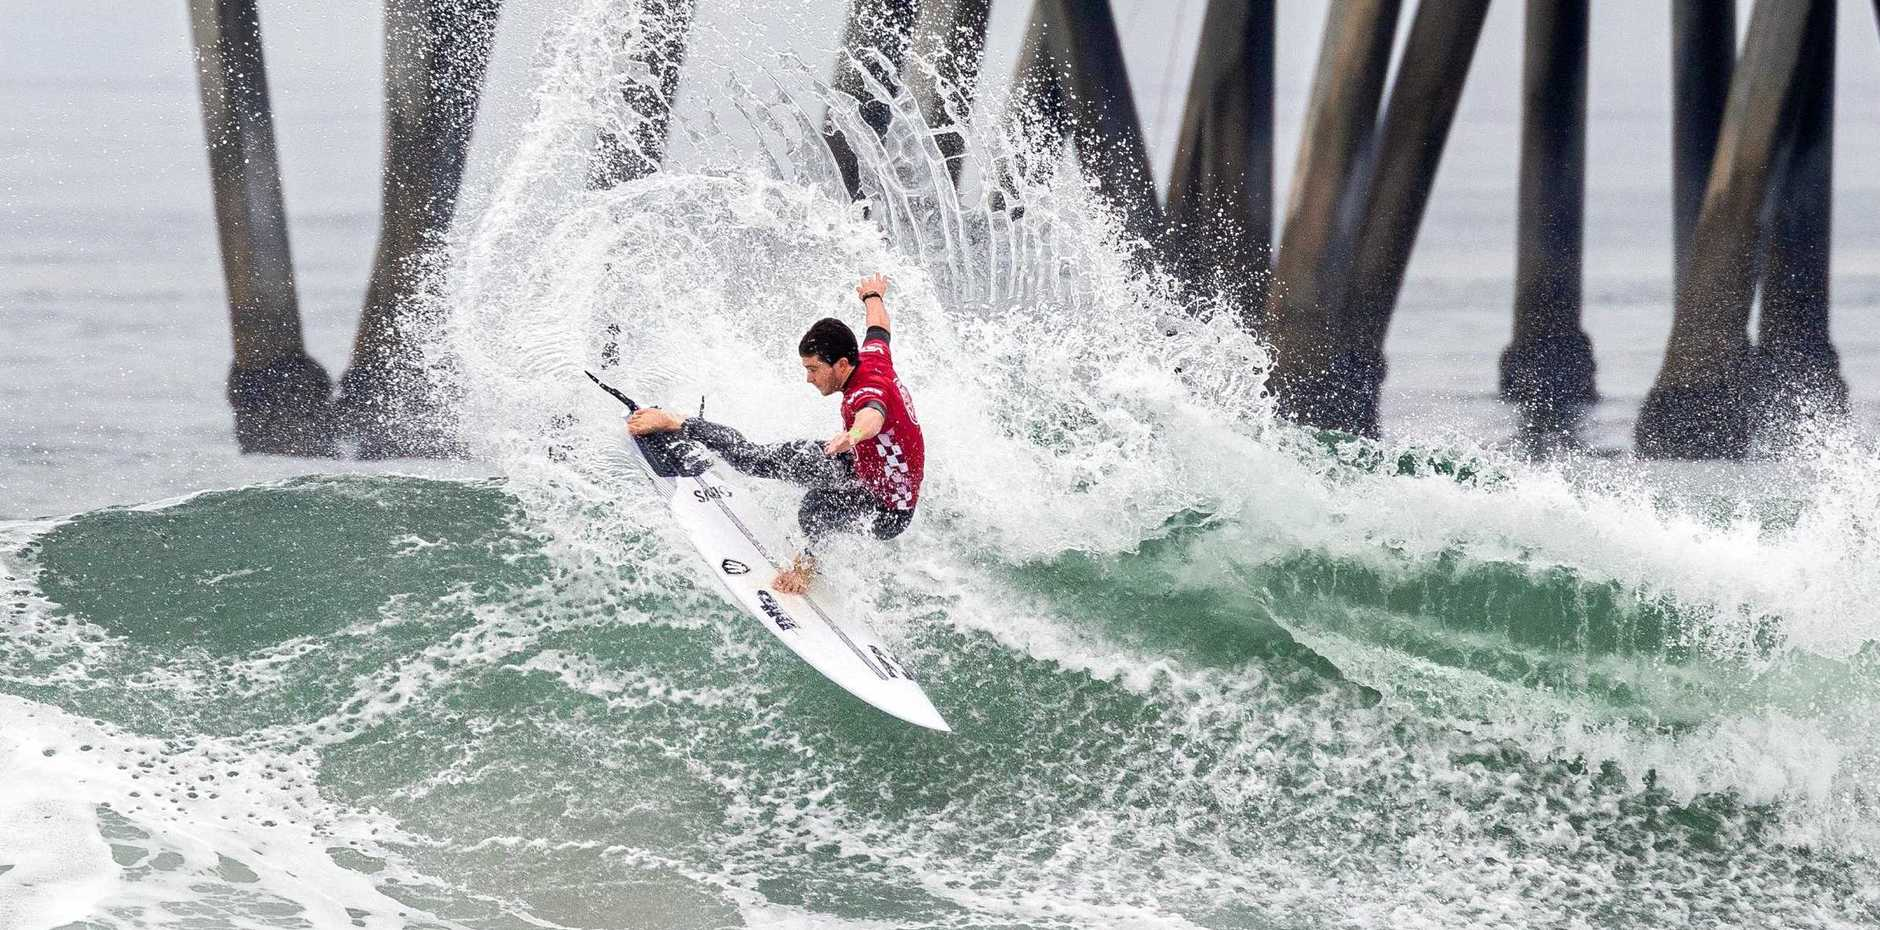 ON THE RISE: Liam O'Brien advancing to the semi-finals of the 2019 VANS US Open of Surfing after winning quarter-final heat 3 at Huntington Beach.